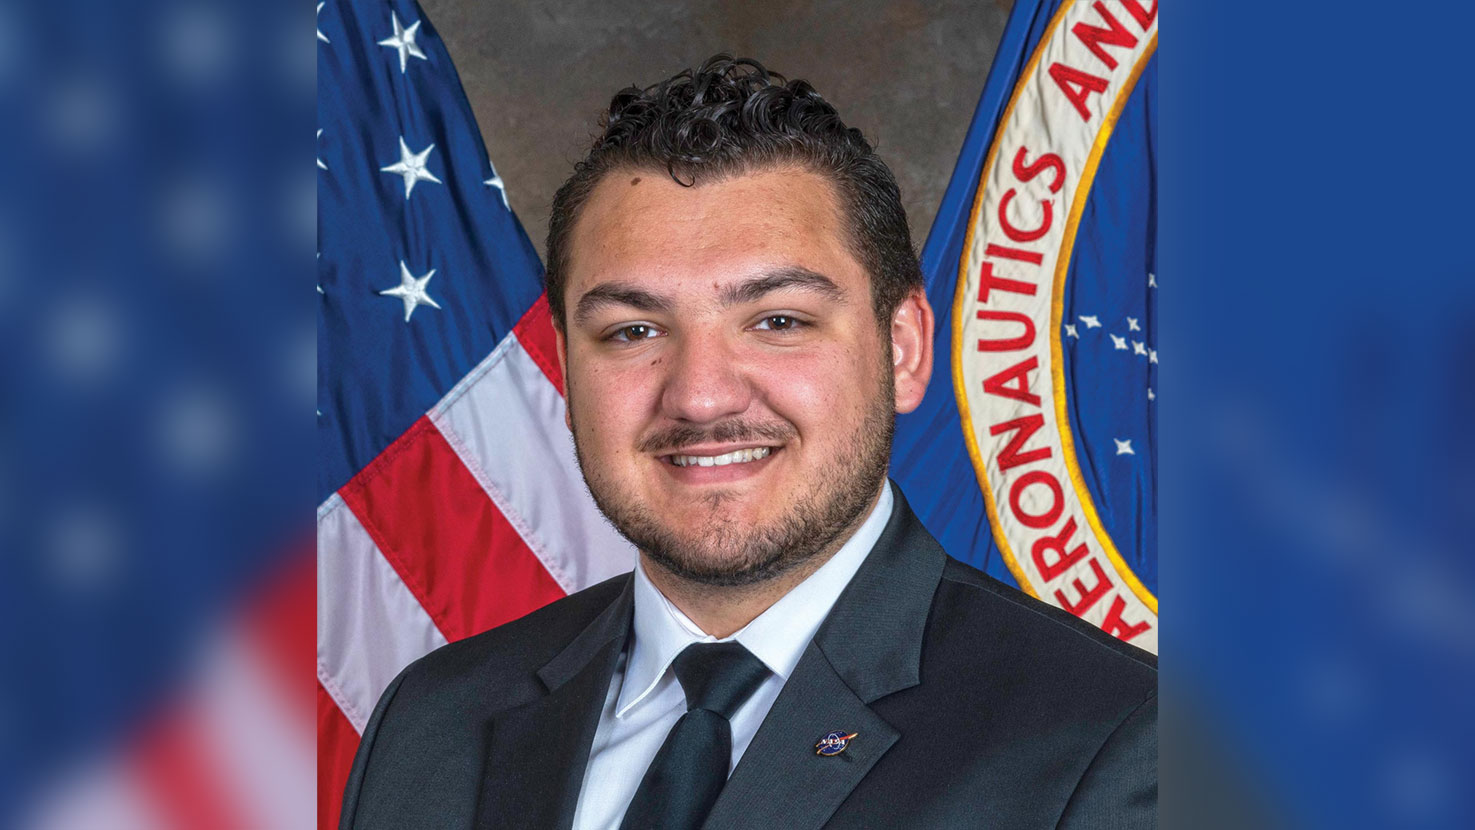 A portrait of Bailey Reid in front of US and NASA flags.